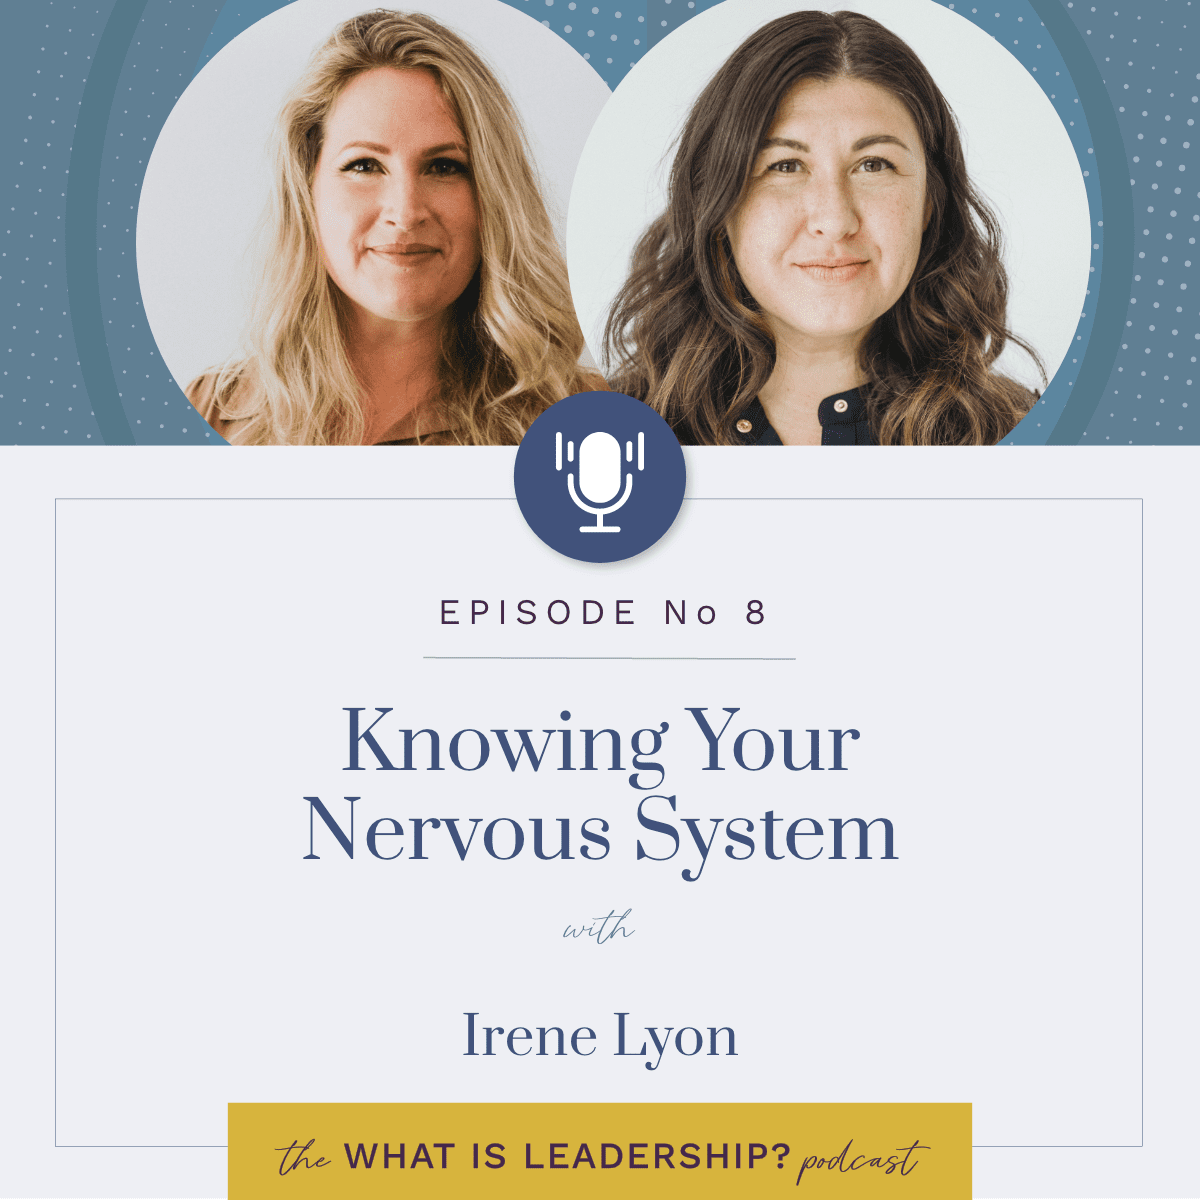 08 -Knowing Your Nervous System with Irene Lyon